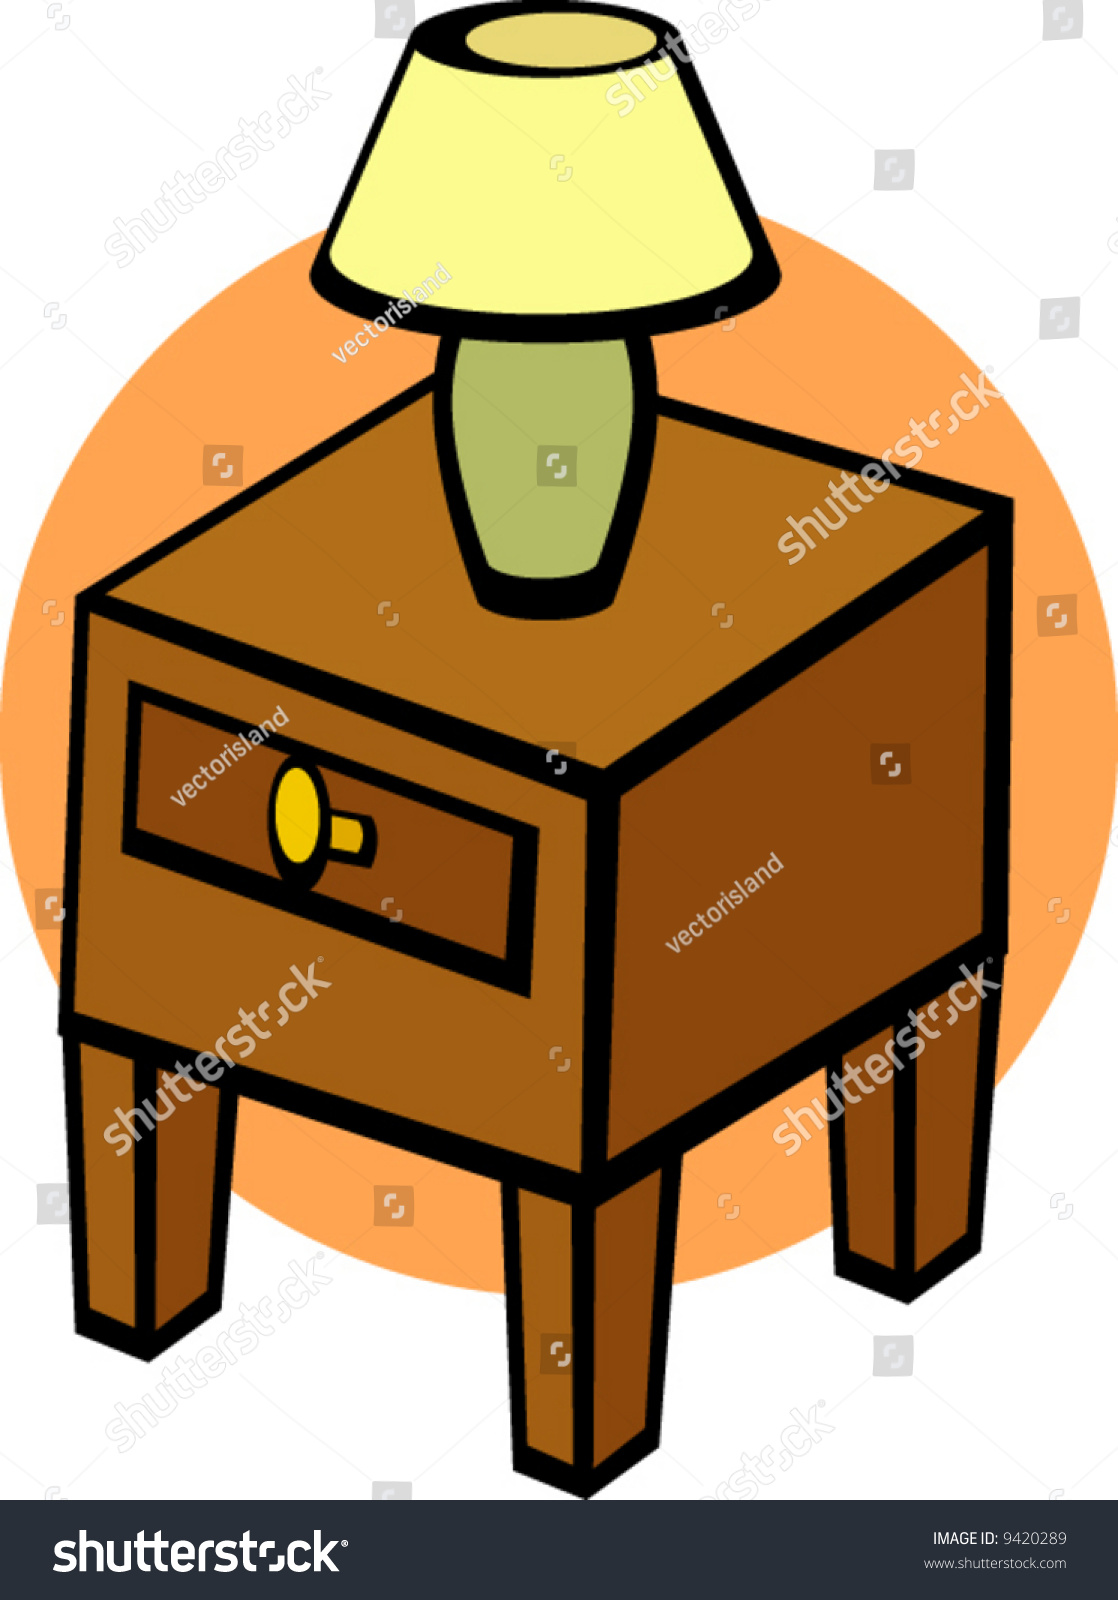 night table clipart - photo #14